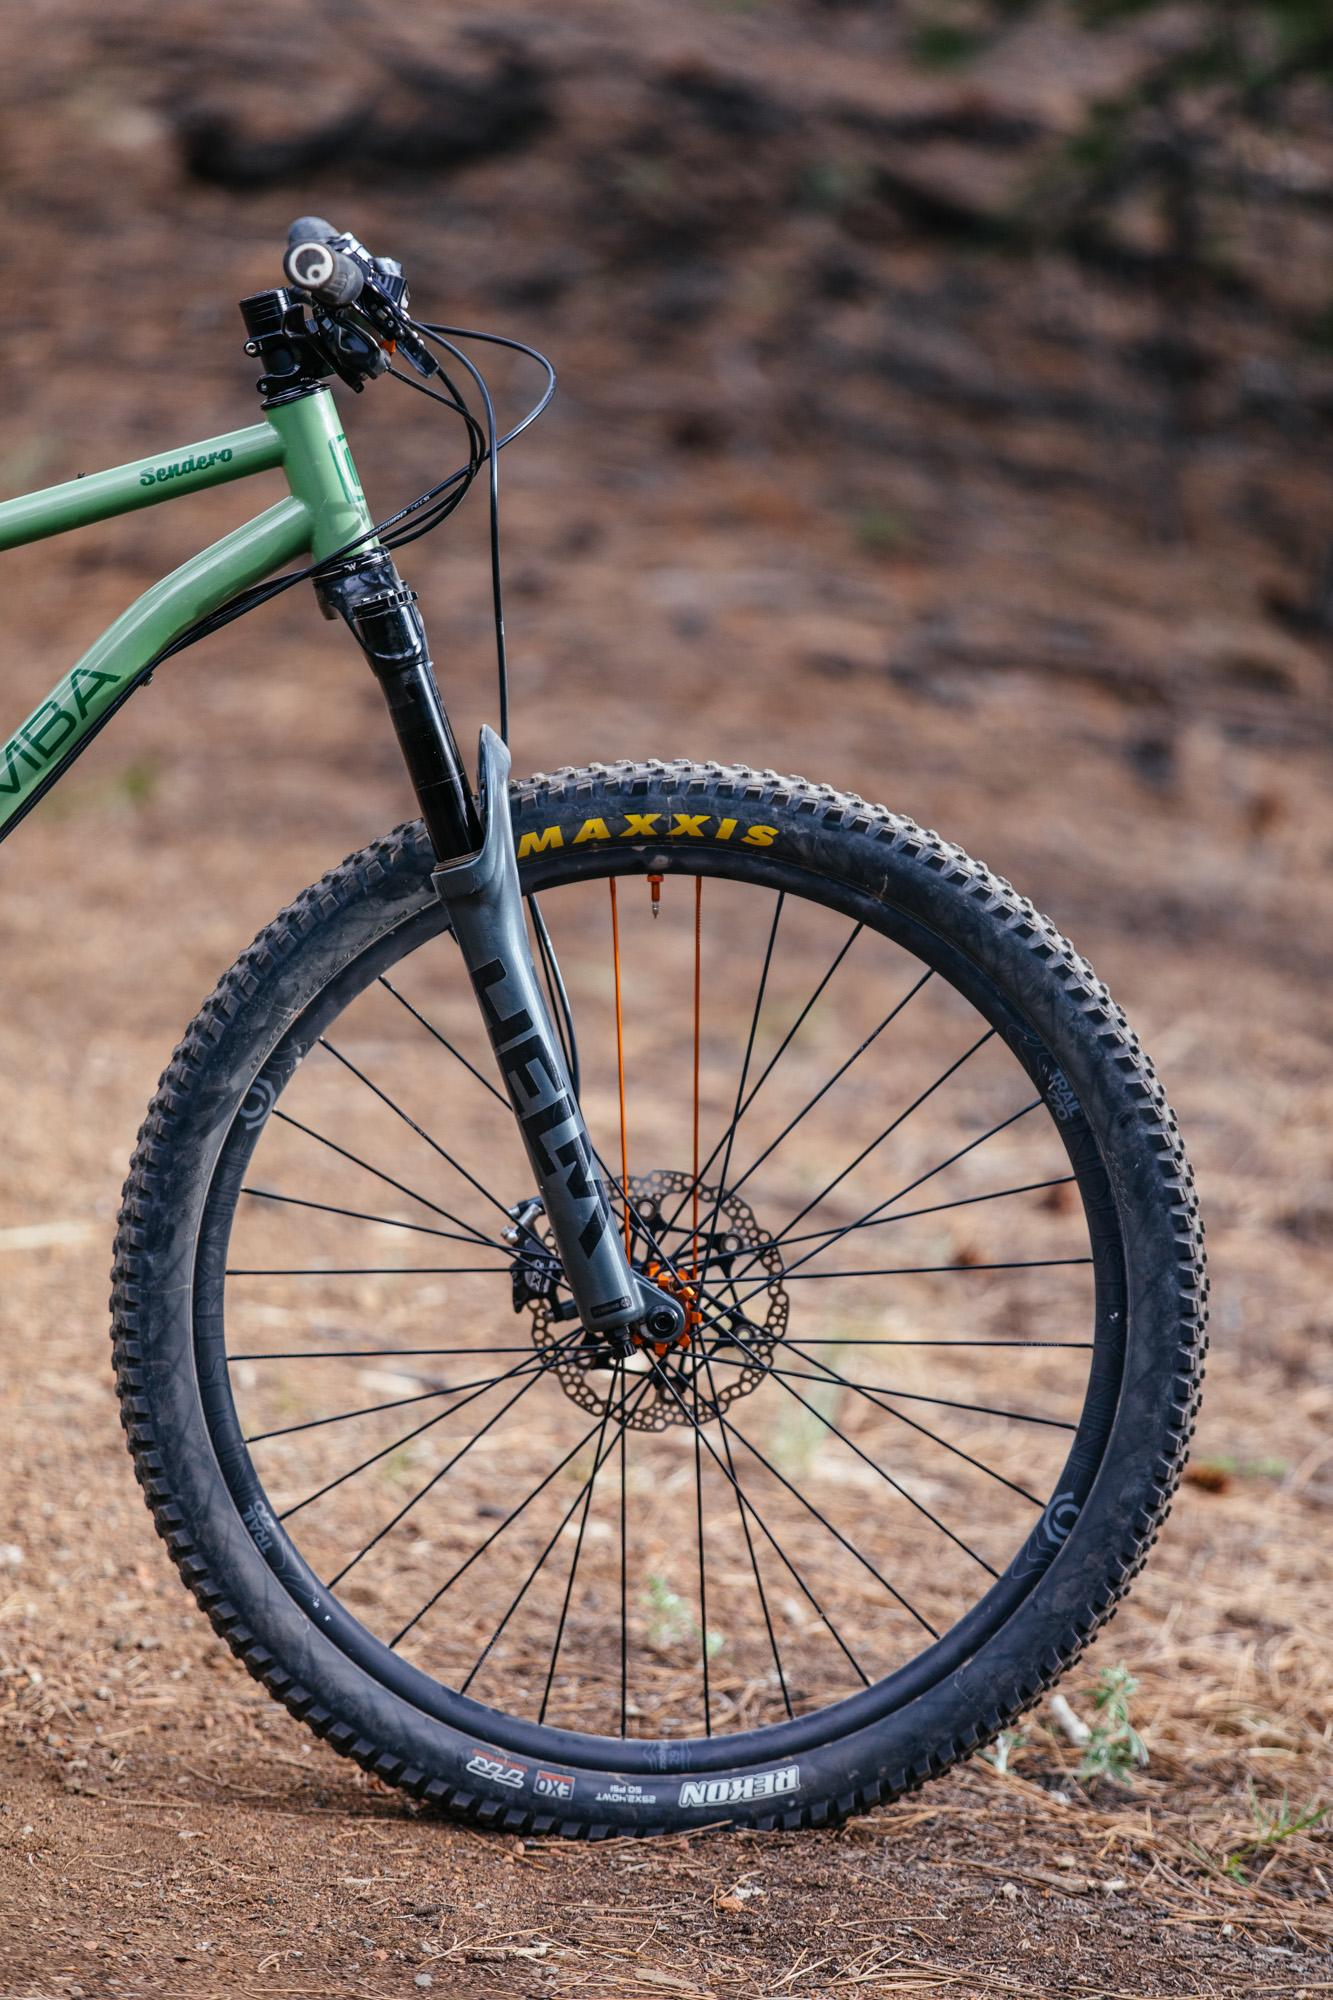 Chunder and Chamisa on the Chumba Senduro 29er Hardtail